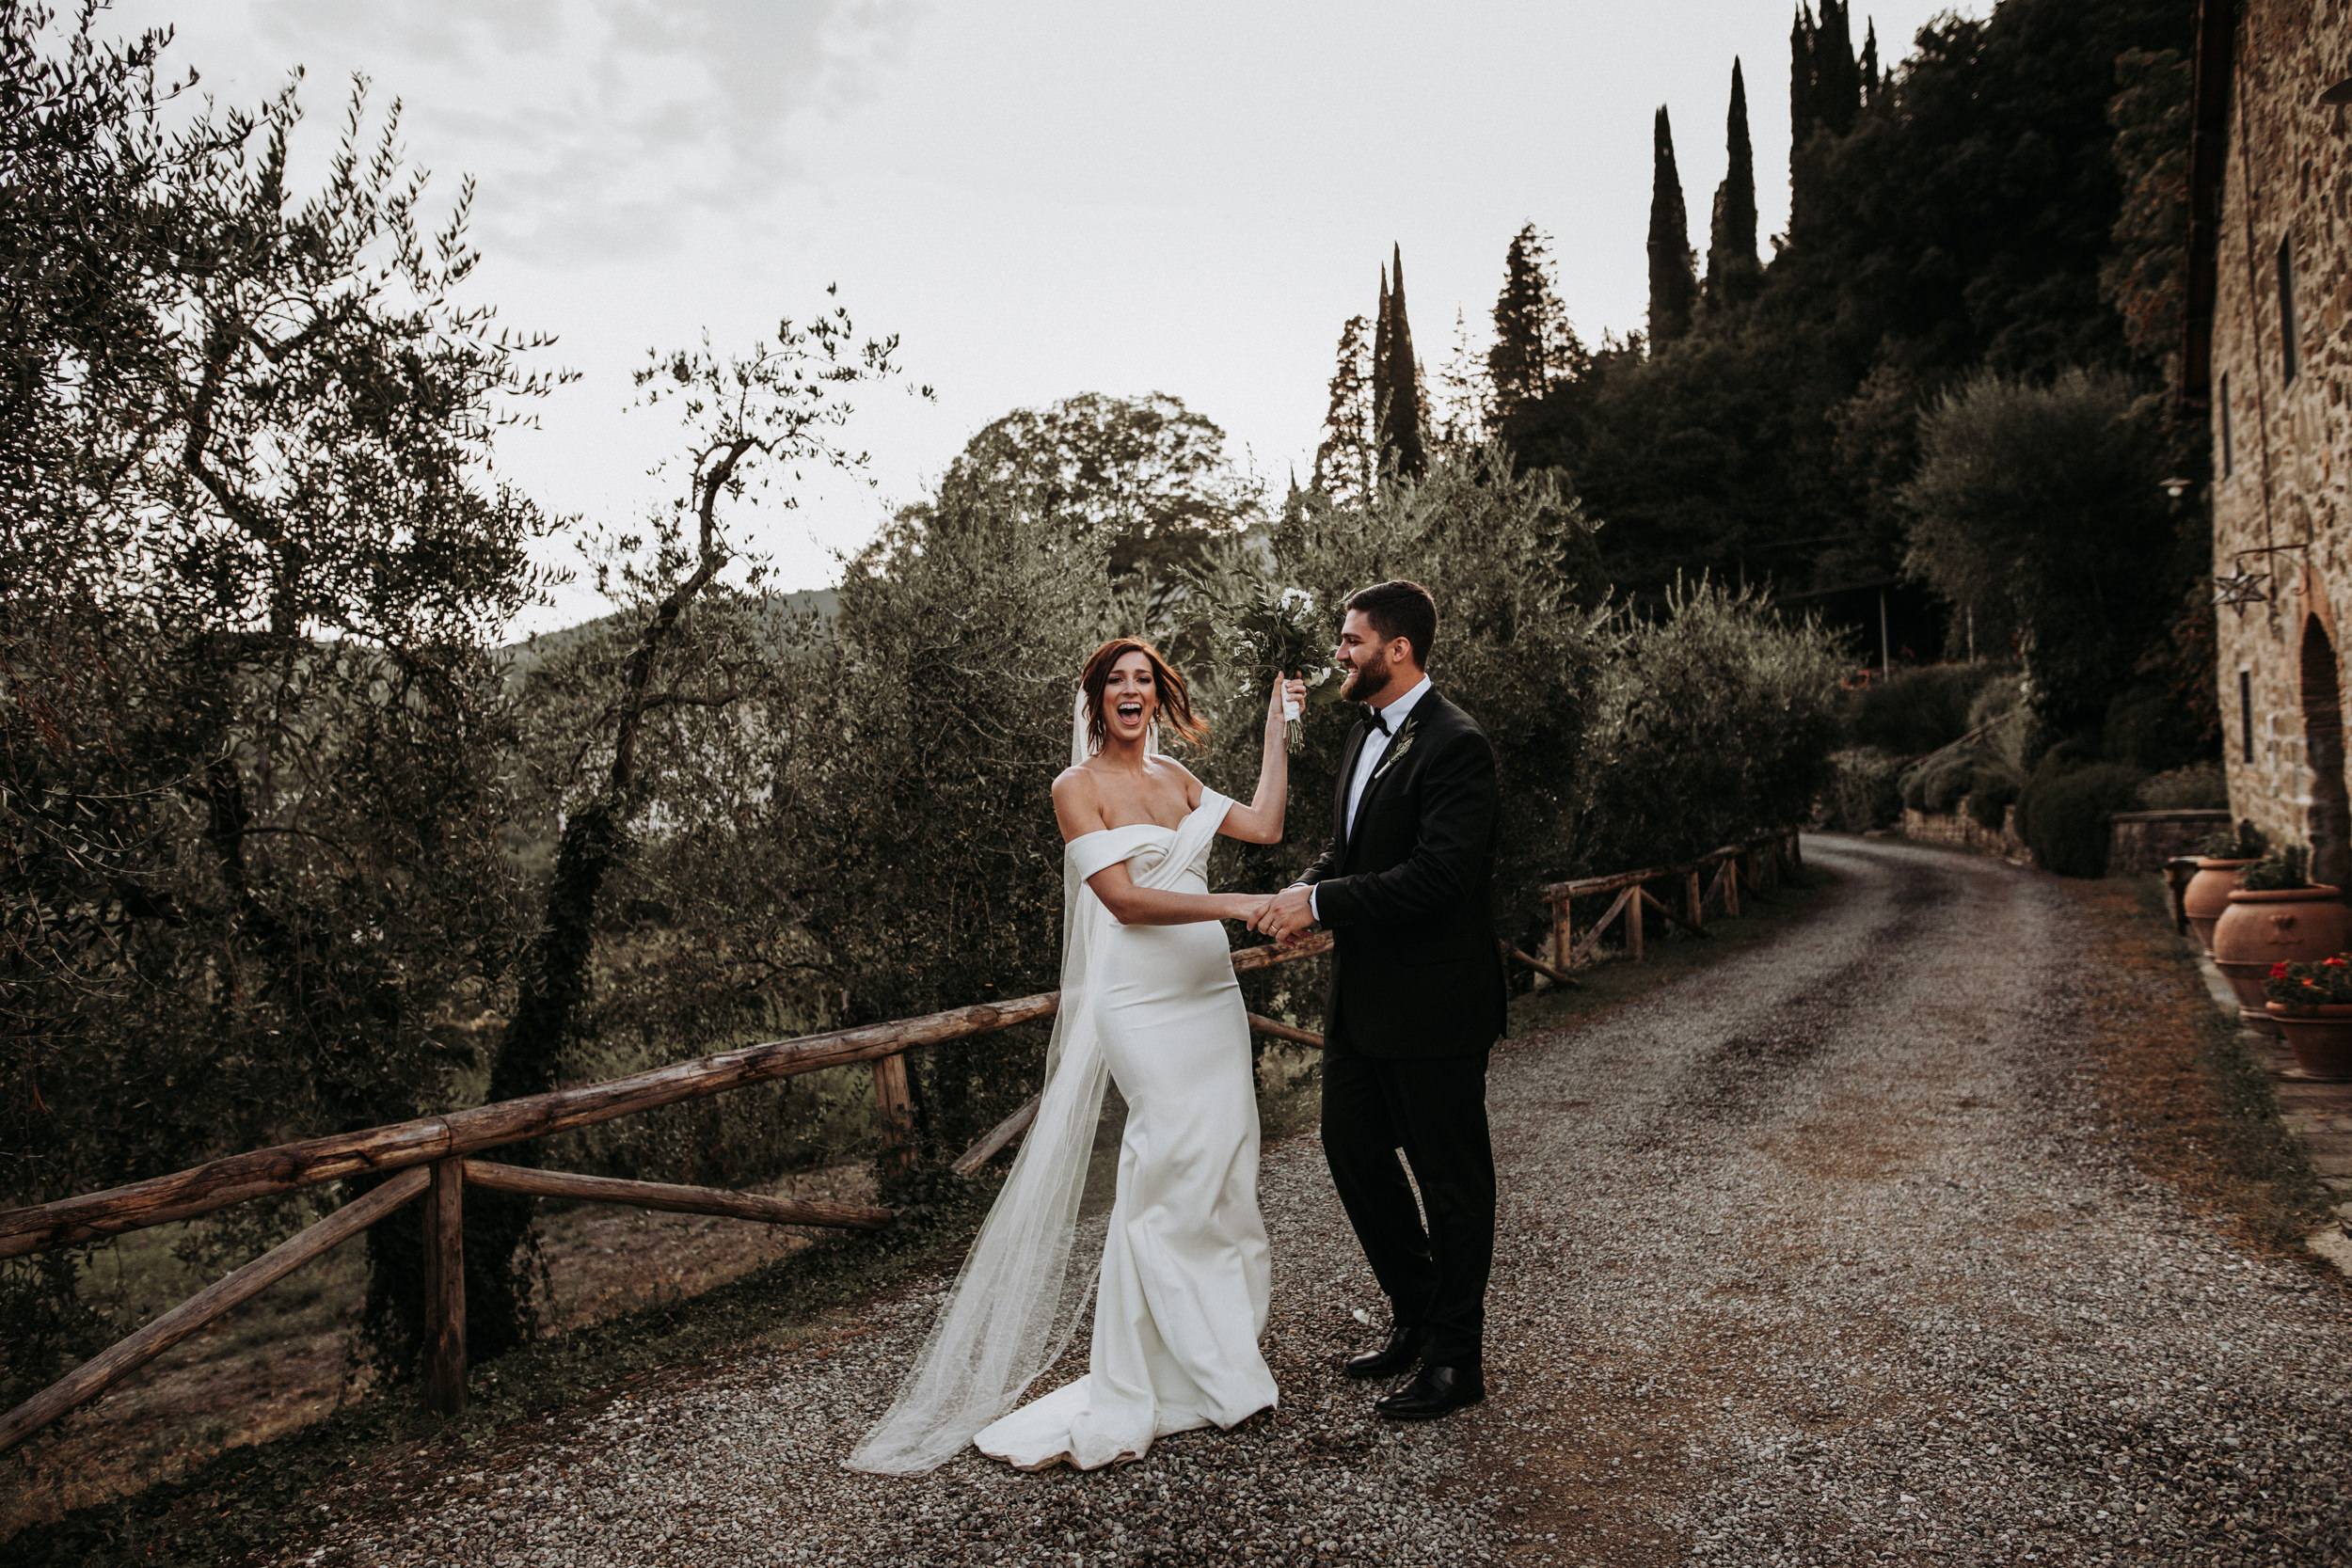 dm_photography_KW_Tuscanyweddingday_355